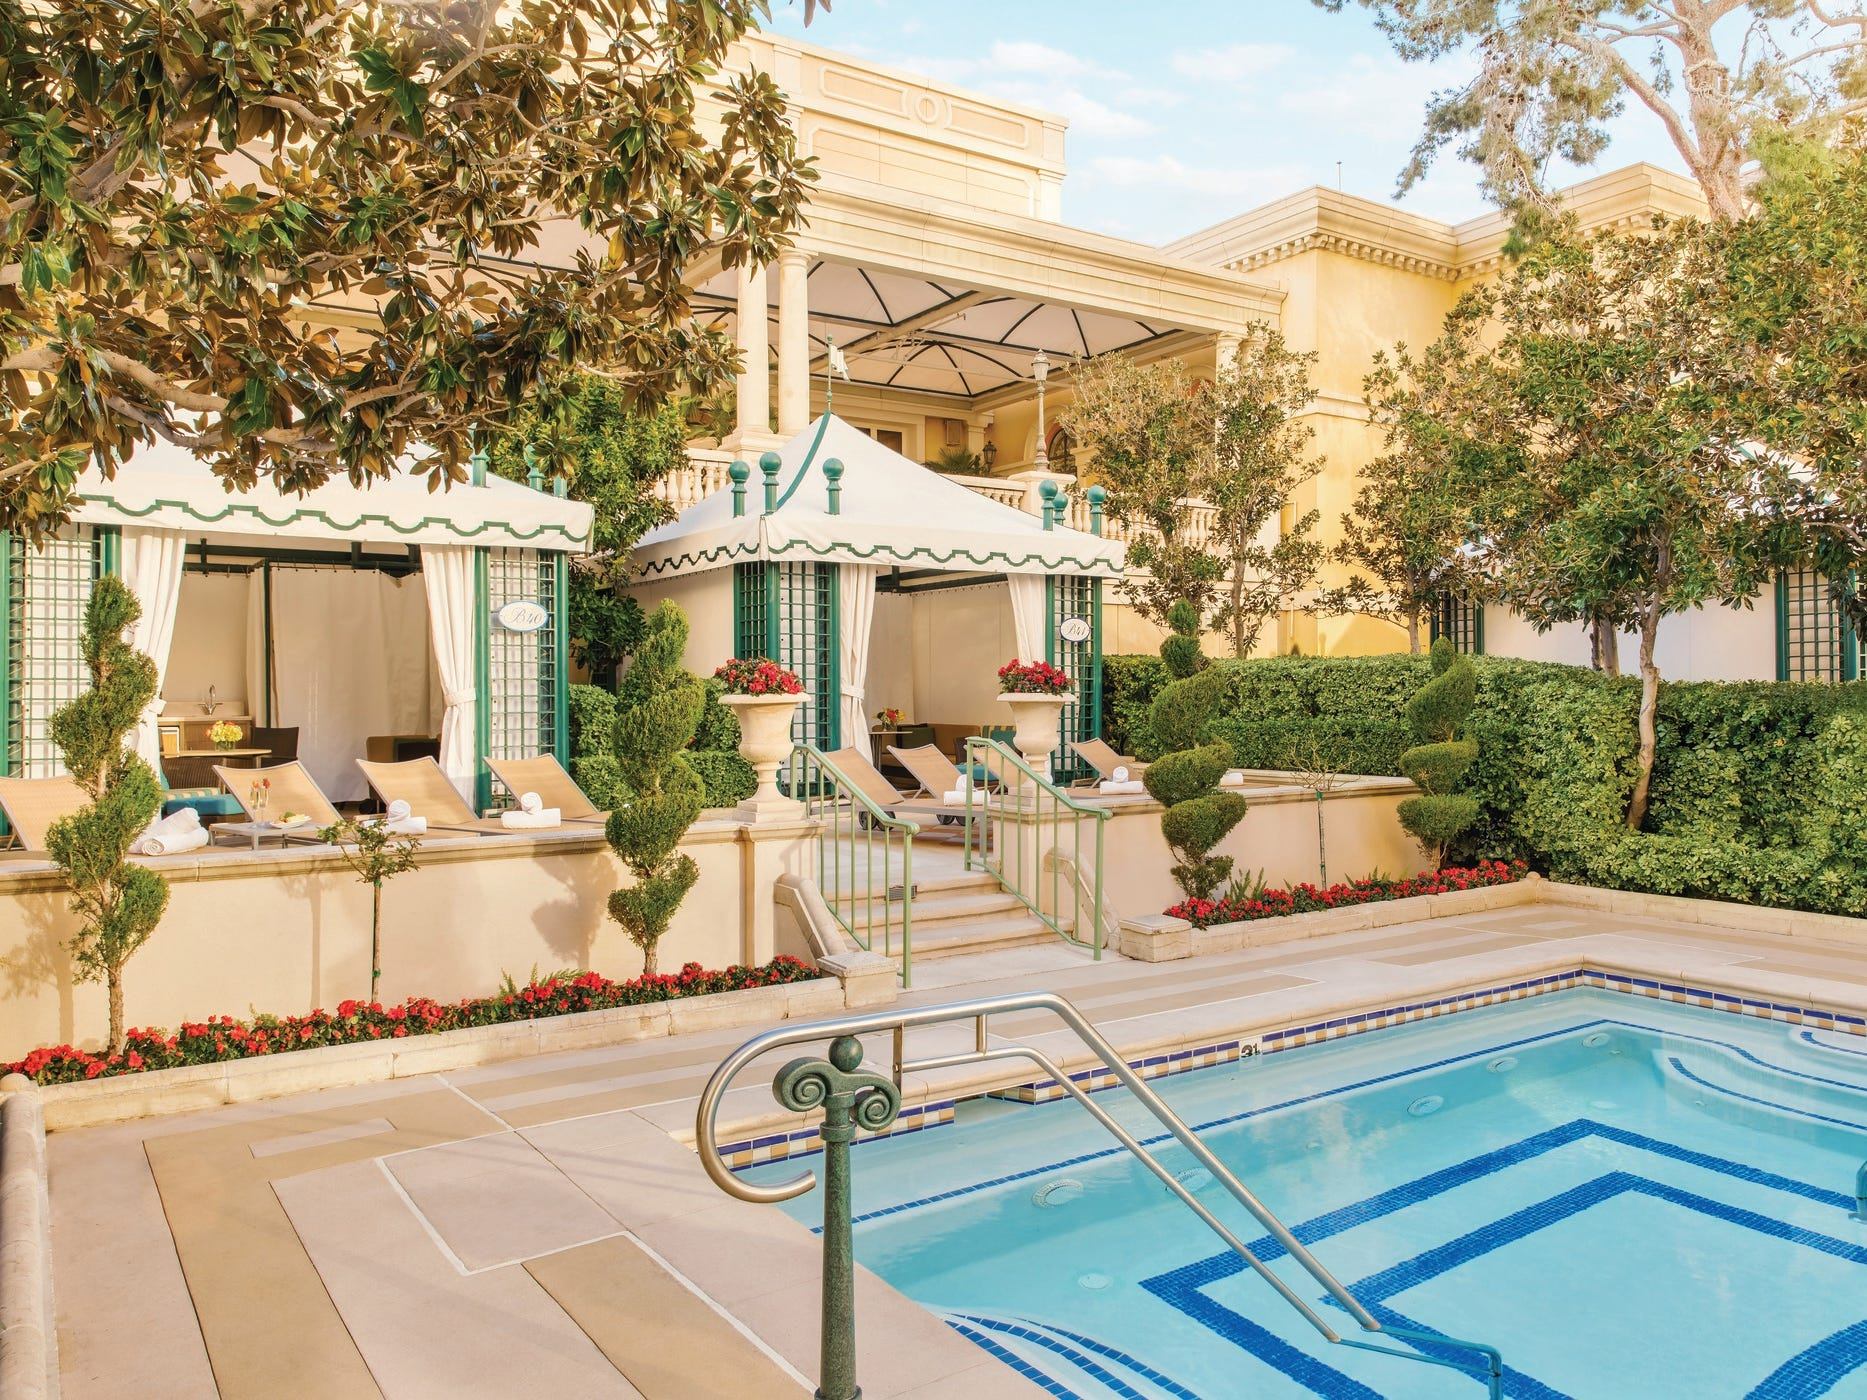 The luxe Bellagio resort in Las Vegas supersizes everything, including its cabanas. The Chairman's Cabana, which starts at $1,000 a day, is two cabanas that seat up to 20. There are 10 lounge chairs, a dining table and a private jacuzzi.